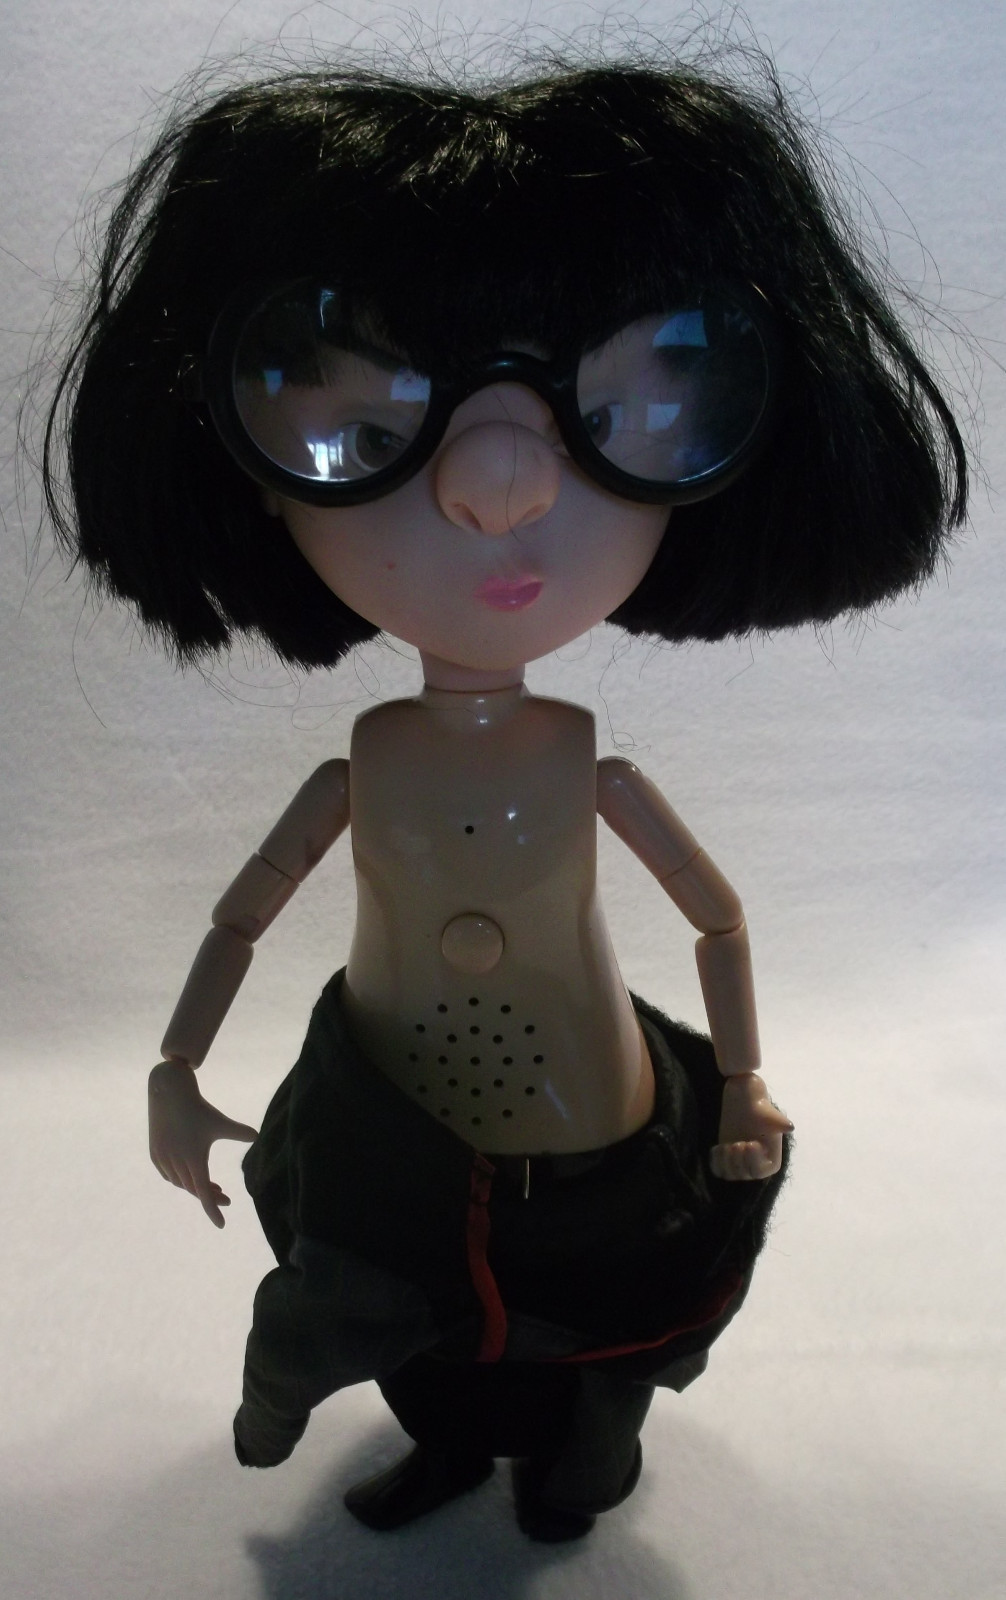 The Incredible Felted Fashion Of Barbara Poole: Disney Pixar The Incredibles Talking Interactive Edna Mode